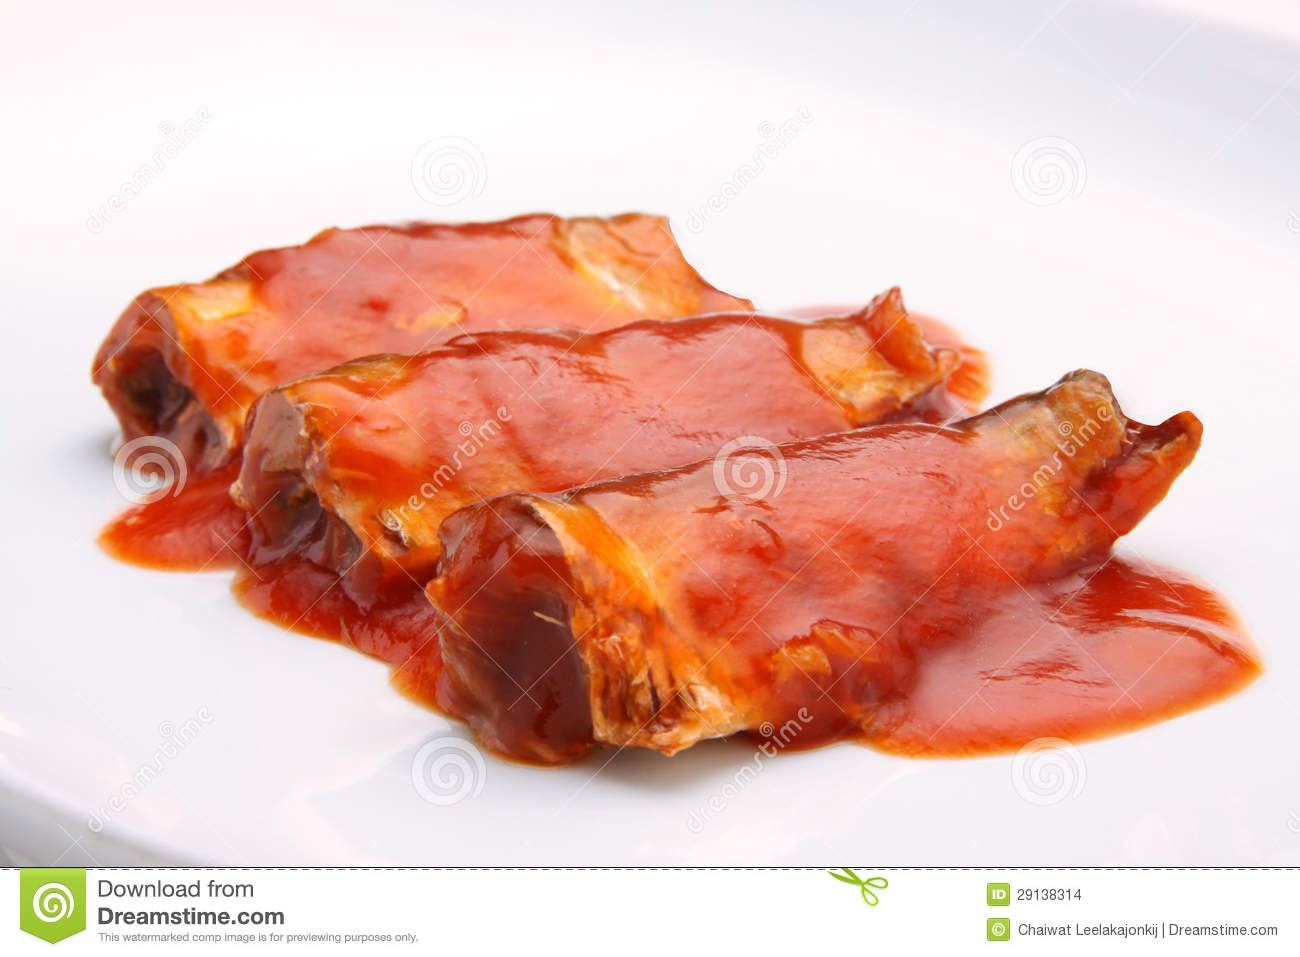 Canned Fish In Tomato Sauce Stock Images - Image: 29138314